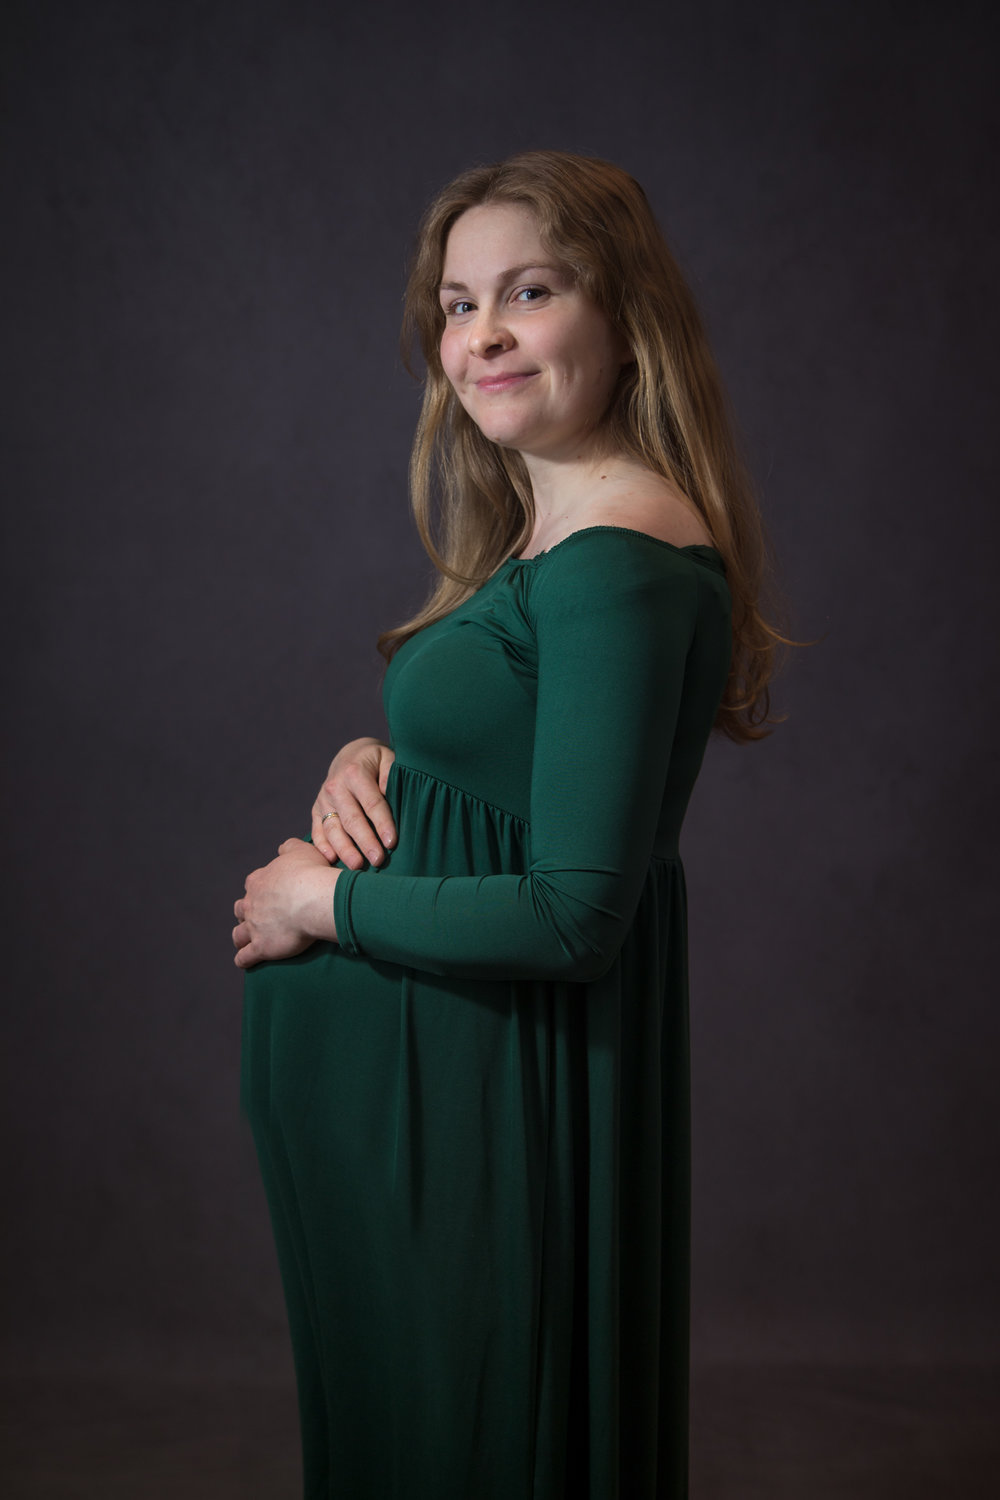 Maternity photography in studio, Herne Hill, London